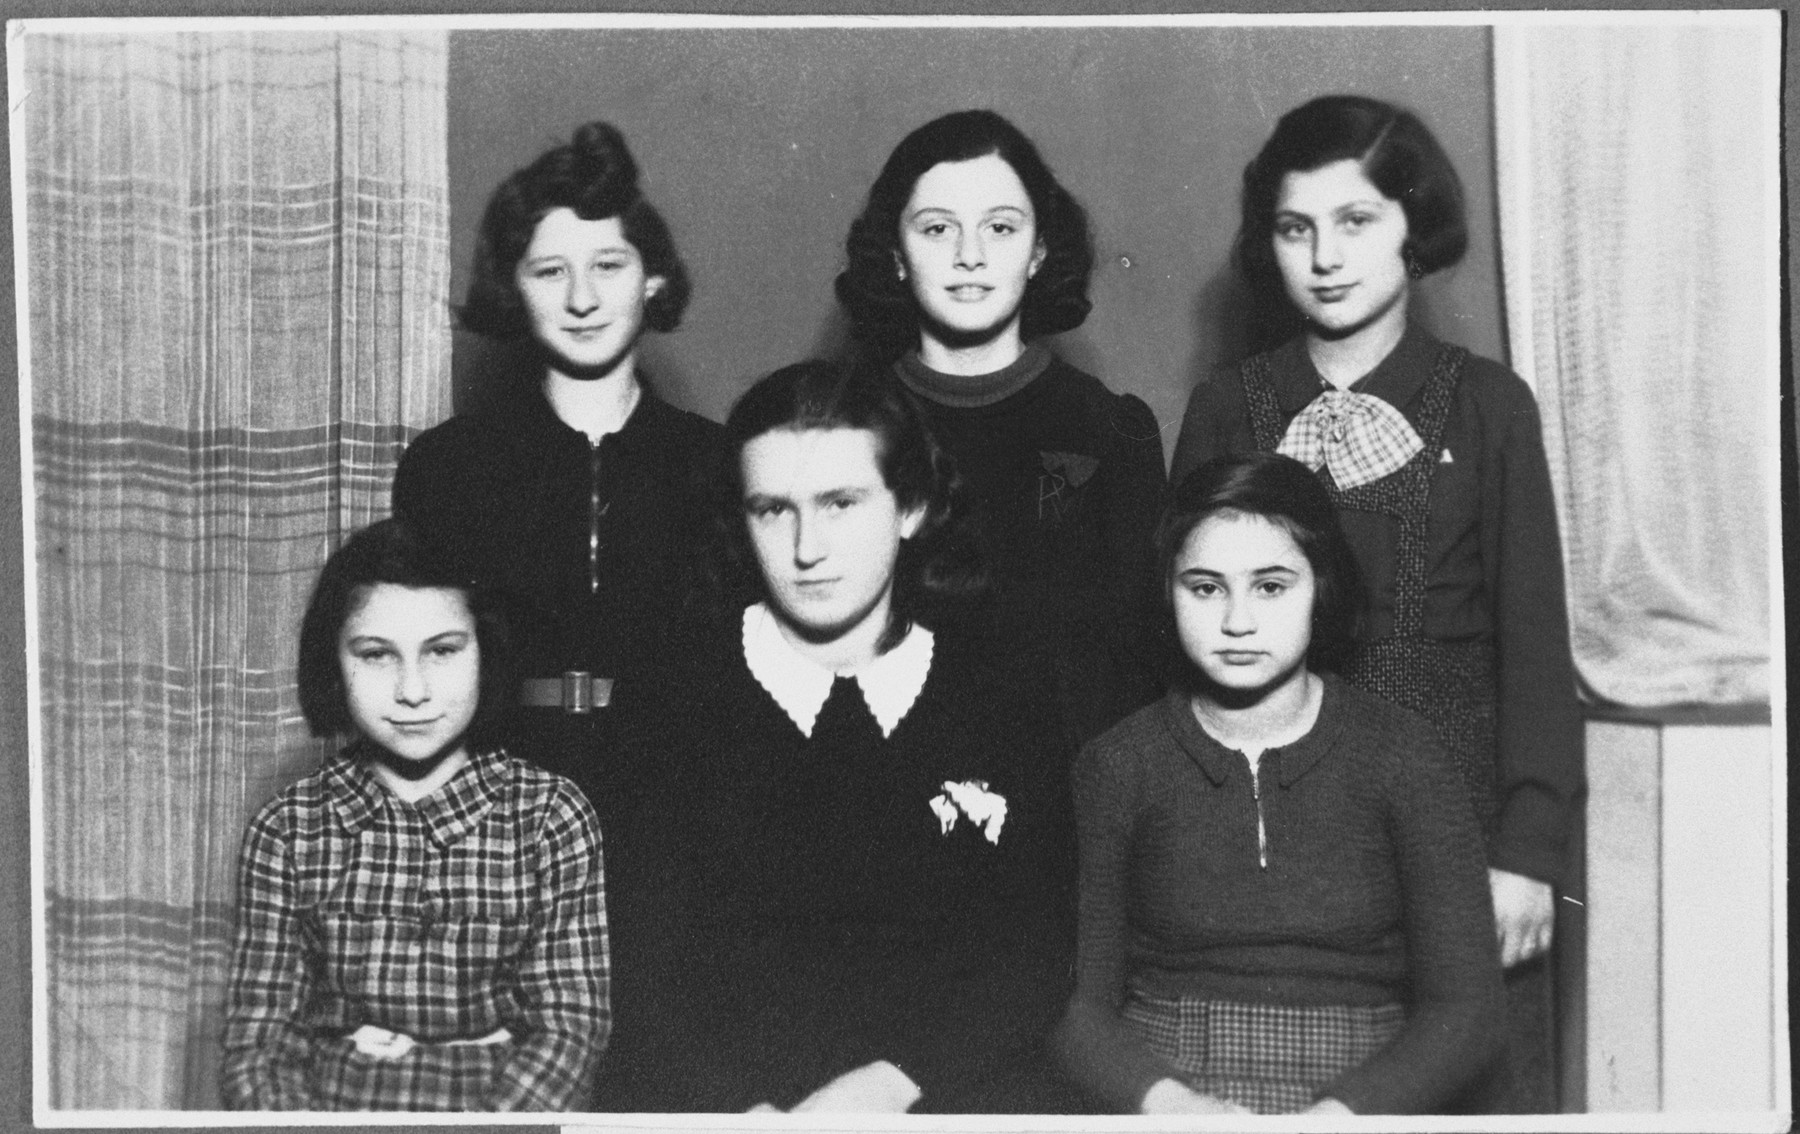 Group portrait of young girls that are members of the Atid-Thelet Lavan youth group.  Pictured are, from left to right, in the first row: Elvira Fuhrmann, Dita Heilig (madriha of the group), the donor, and in the second row: Lydia Banda, Ruth Weisz and Ruth Oppenheimer.